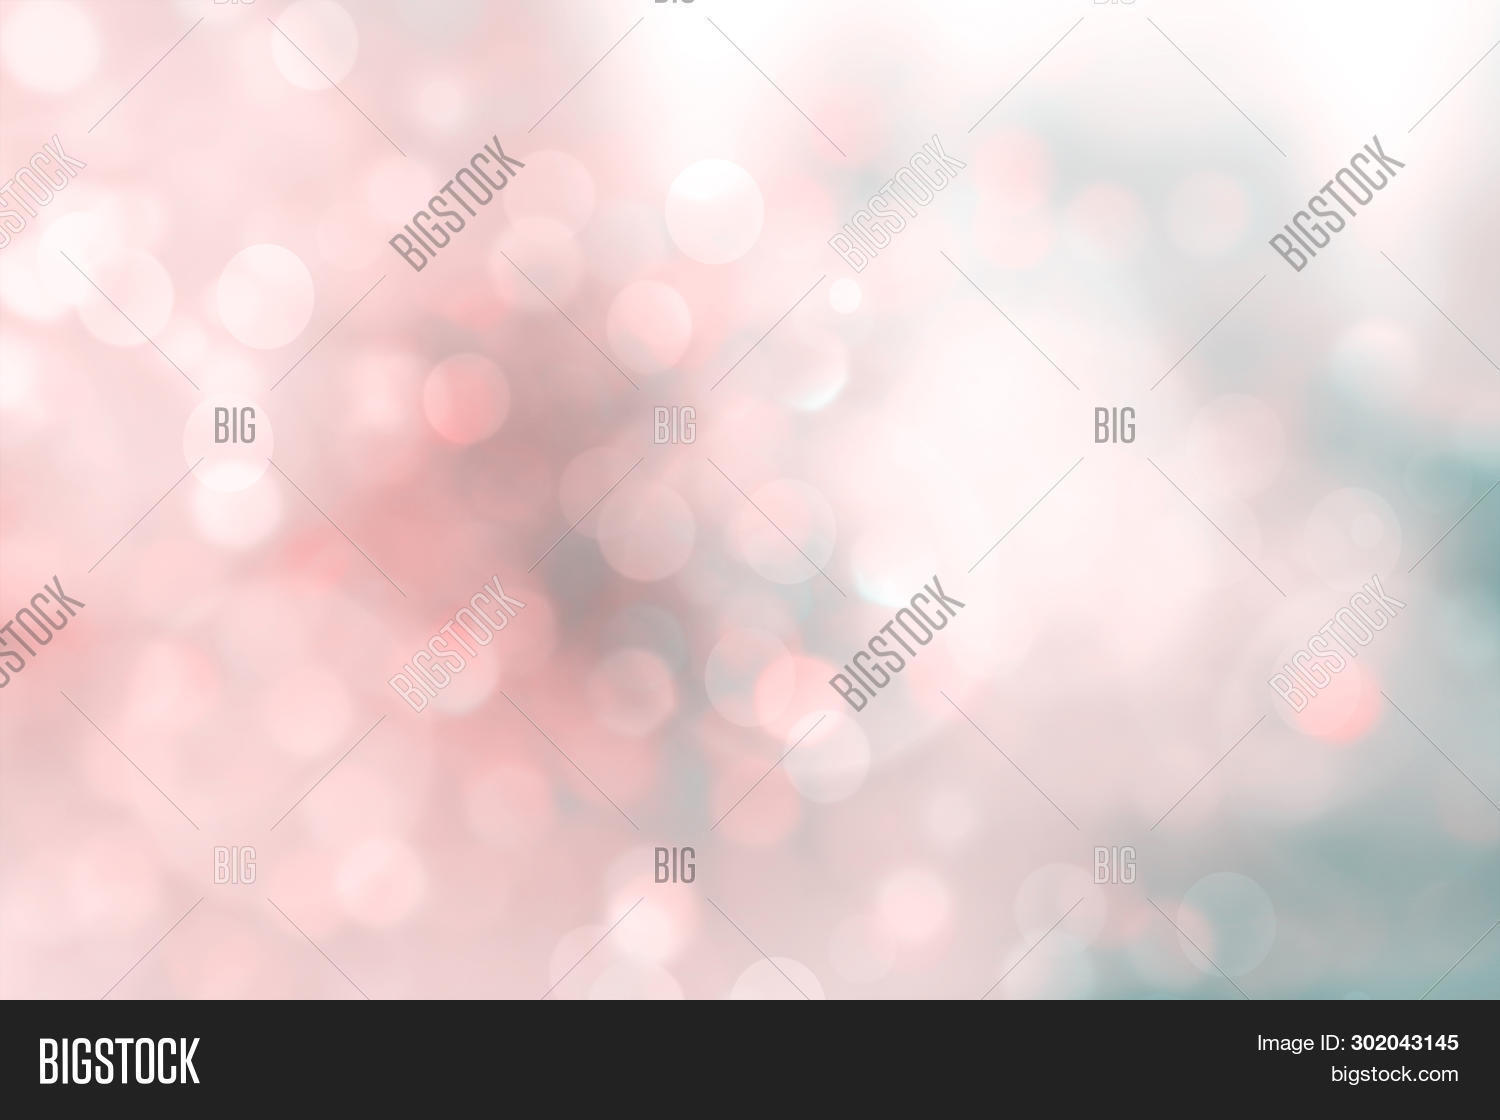 Christmas,abstract,background,beige,blink,blue,blur,blurred,blurry,bokeh,burst,celebration,colorful,colors,crystal,diamond,effect,elegant,glamour,glimmer,glimmering,glitter,glittering,glitz,glitzy,glow,glowing,gold,holiday,lights,magic,pastel,pink,refocused,shimmer,shimmering,shine,shiny,spangle,sparkle,sparkly,spring,summer,trendy,twinkle,white,winter,year